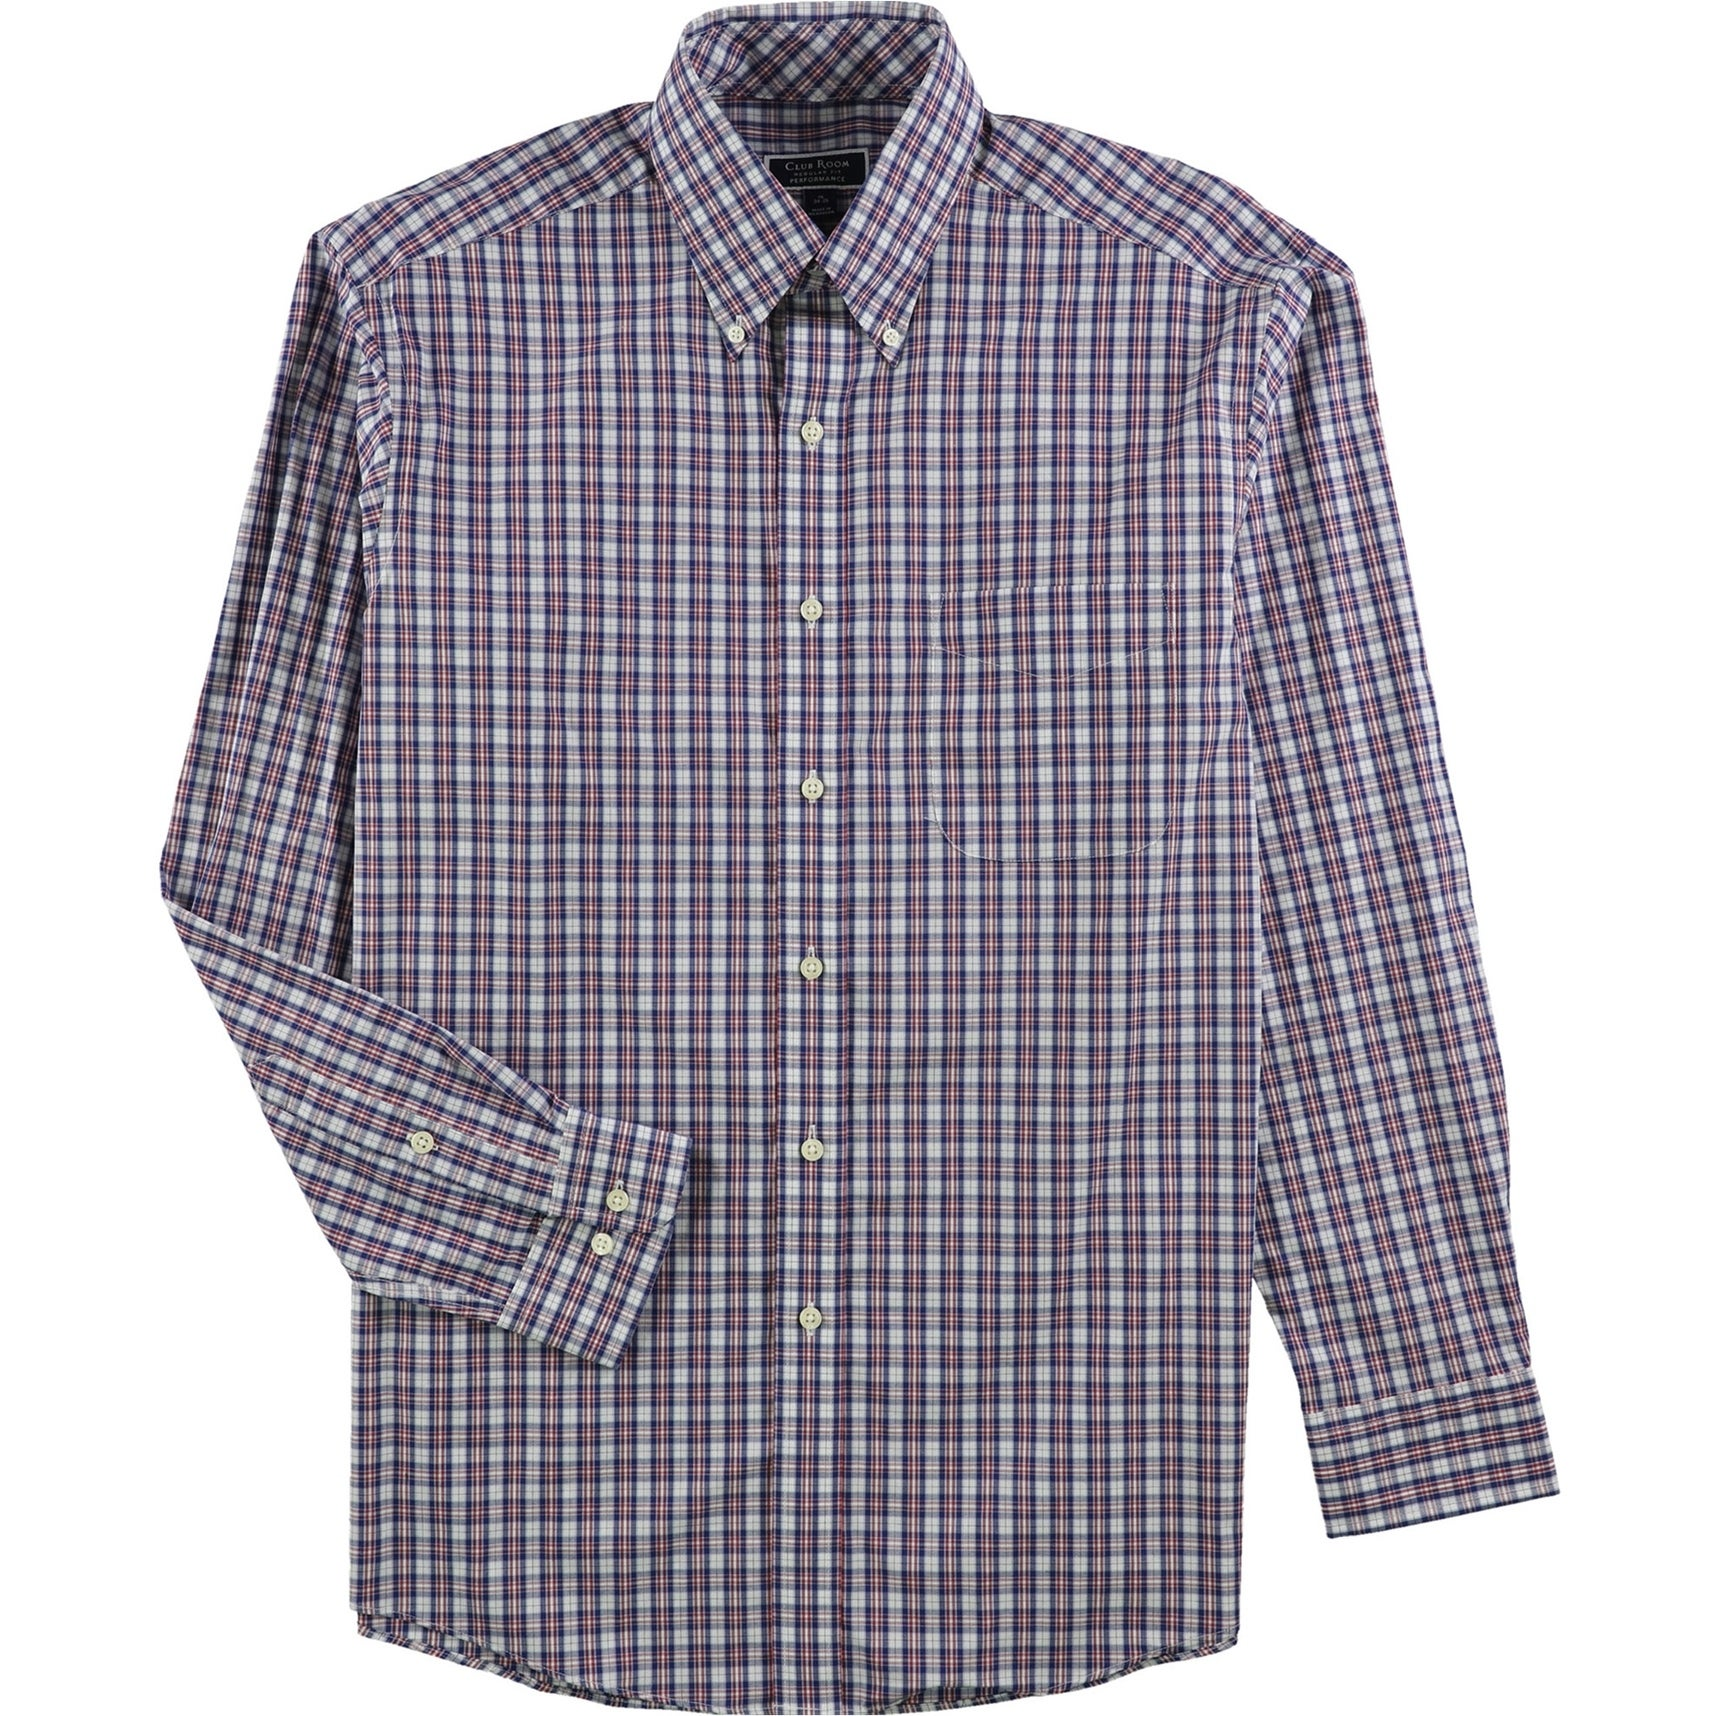 Club Room Mens Wrinkle Resistant Button Up Dress Shirt